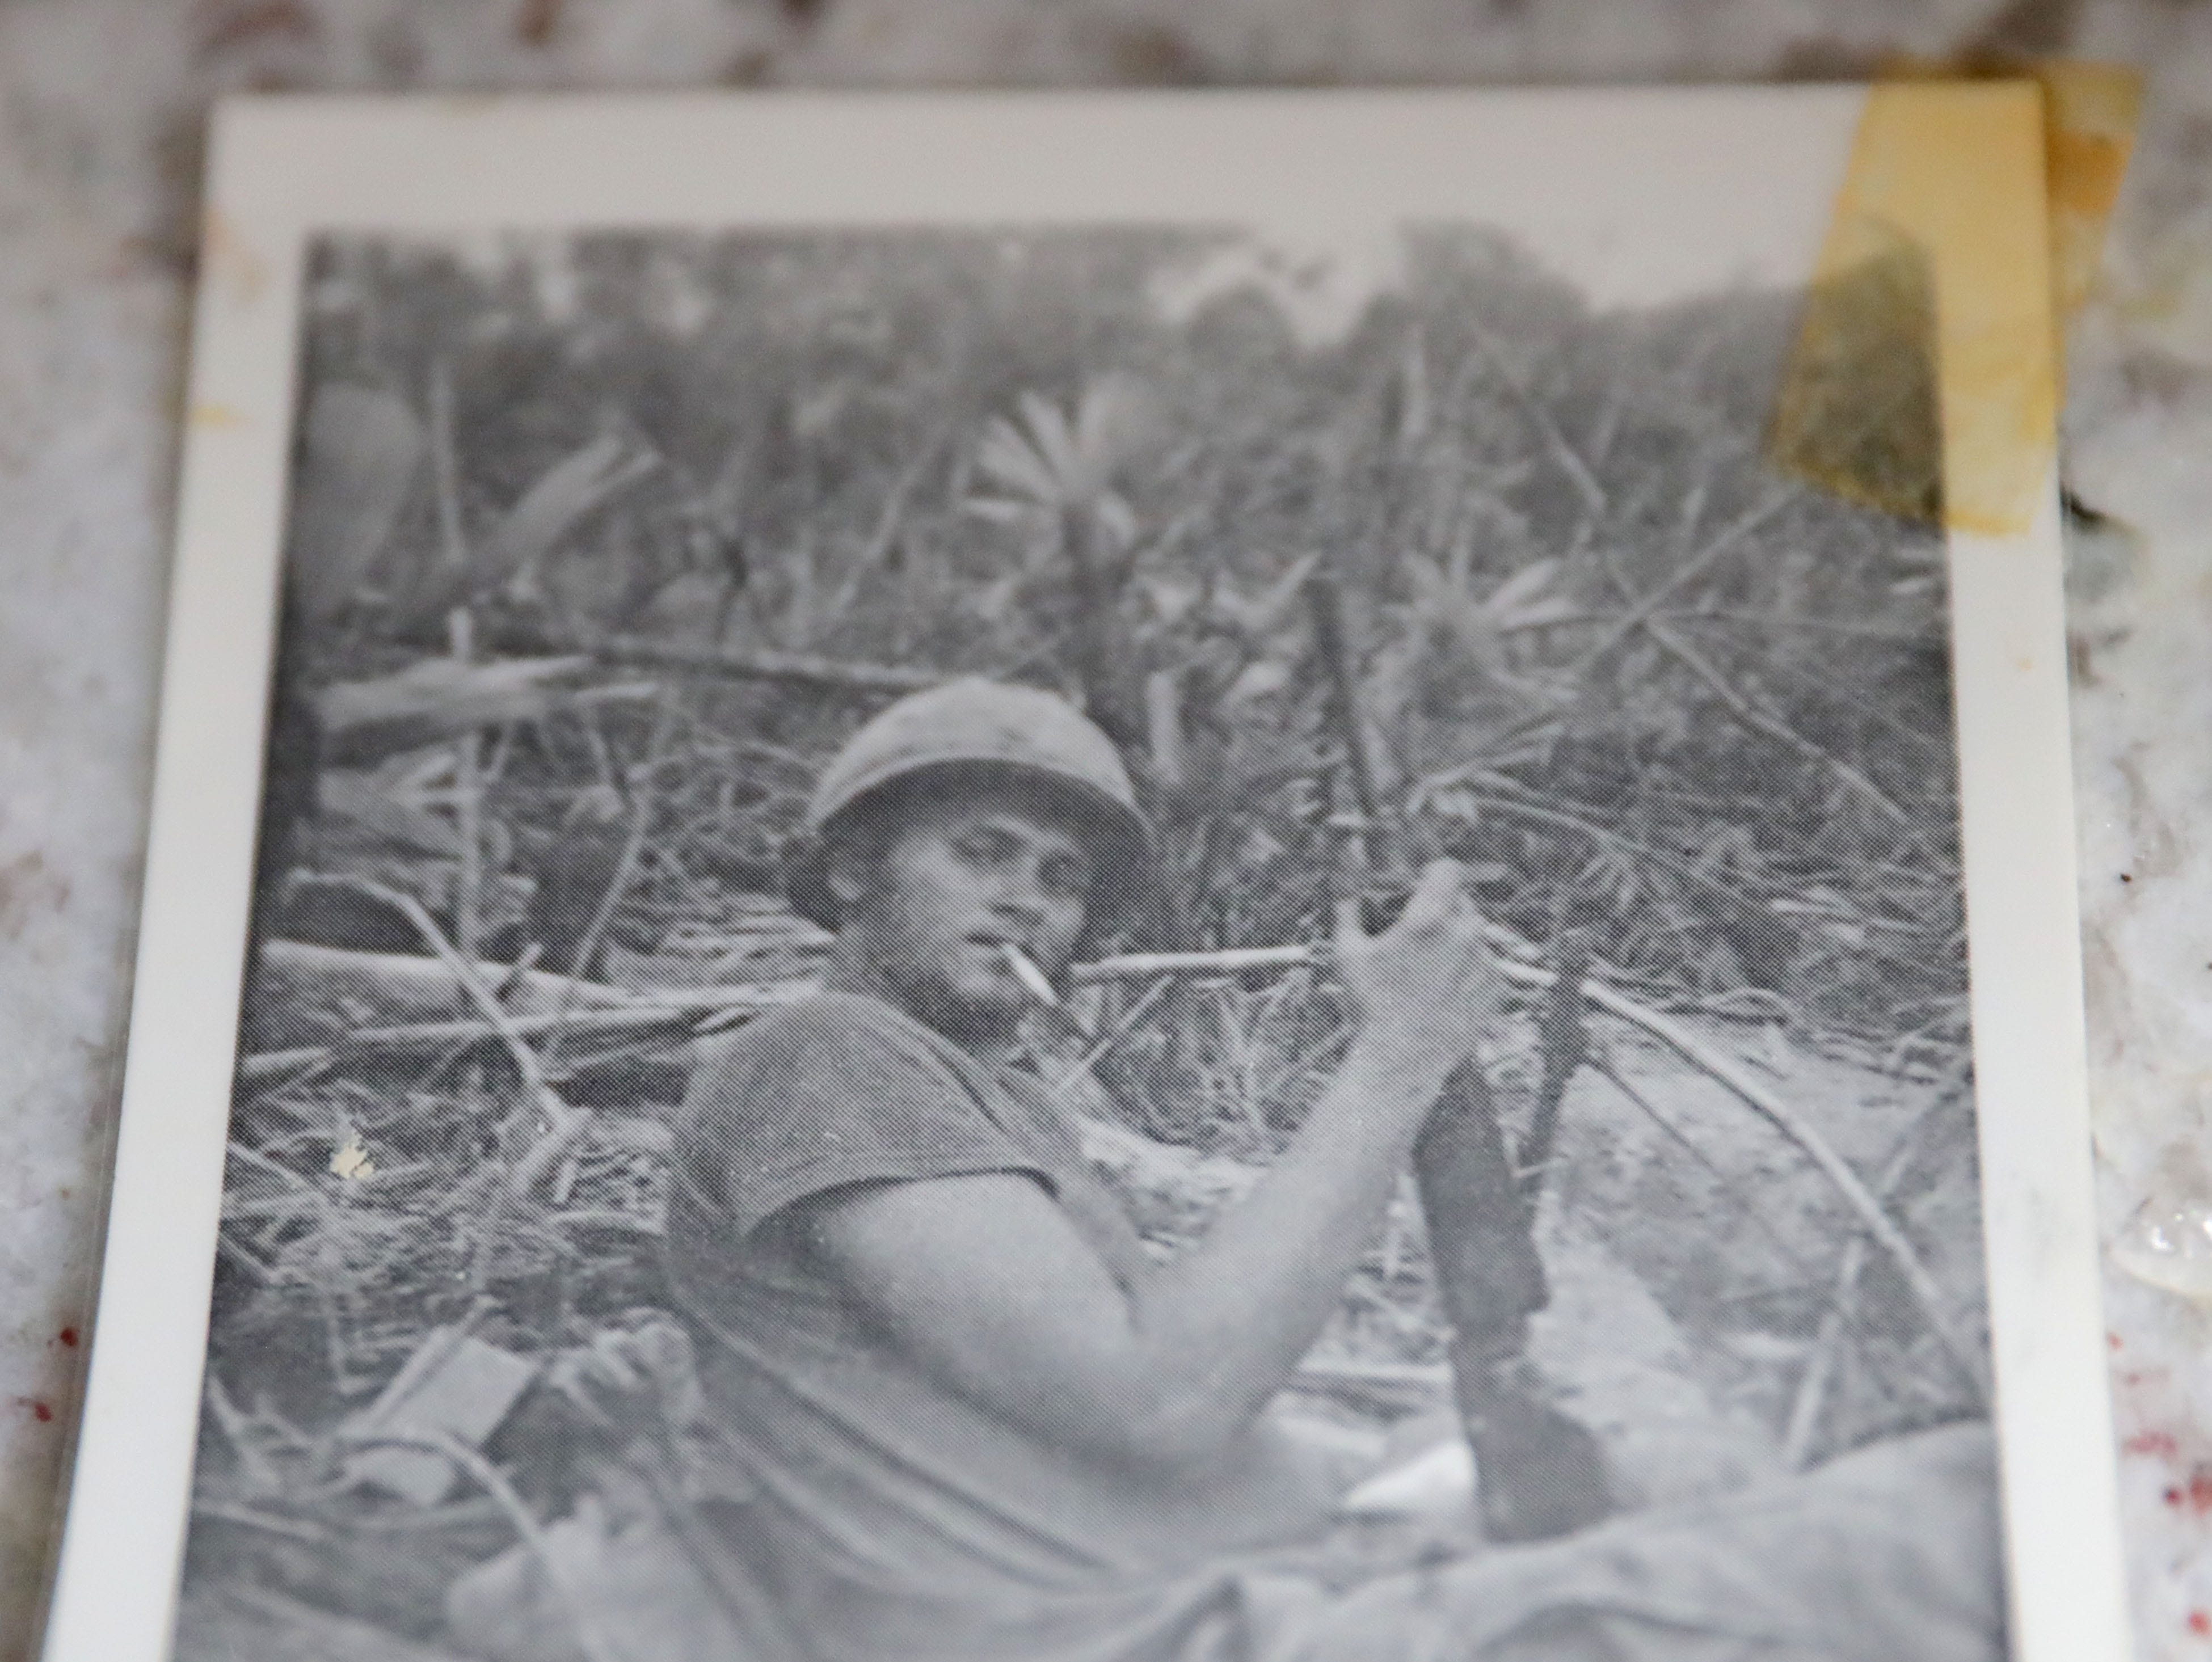 A photo of Wayne R. Thomas, who was killed in Vietnam three days after his 20th birthday in 1969, is seen at the Glendale home of his childhood friend  Gary Weckworth on Tuesday, Feb. 5, 2019. The photo of Thomas is from  November 1969 while on duty in Vietnam. The Milwaukee County War Memorial has started a project to put photos and short biographies of Milwaukee County residents killed in combat on its Roll of Honor.